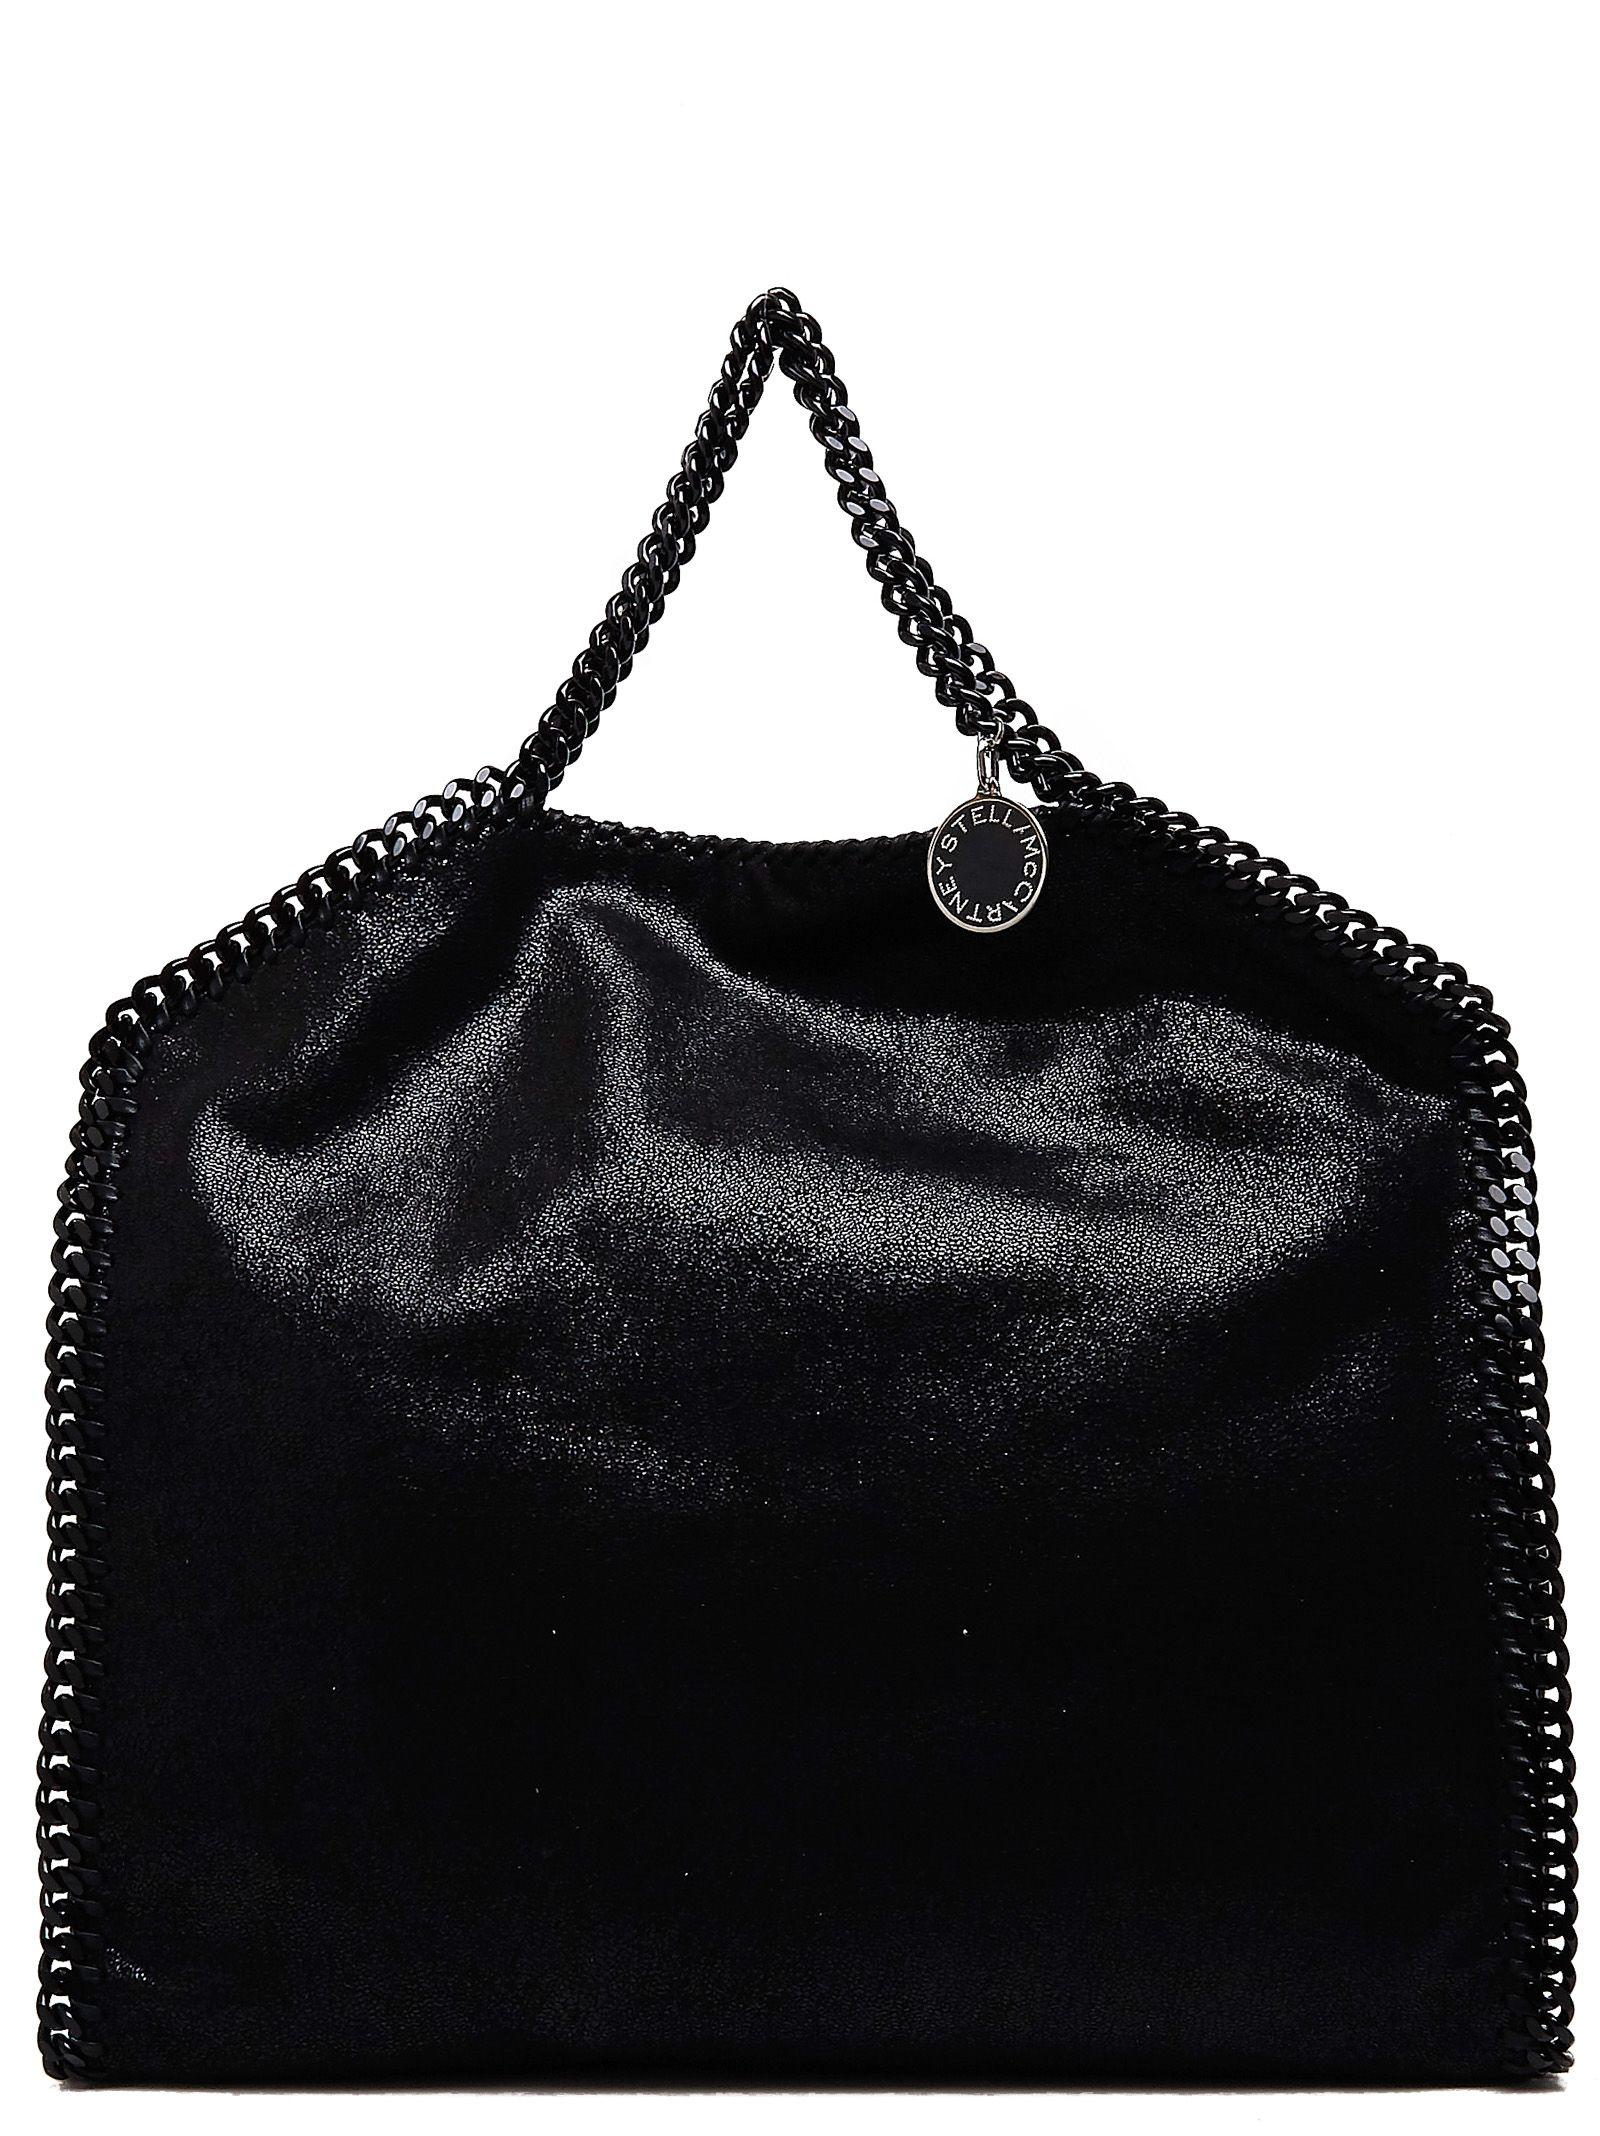 0a8b83fafc68 Stella Mccartney Falabella Shaggy Deer Faux Leather Tote - Black ...